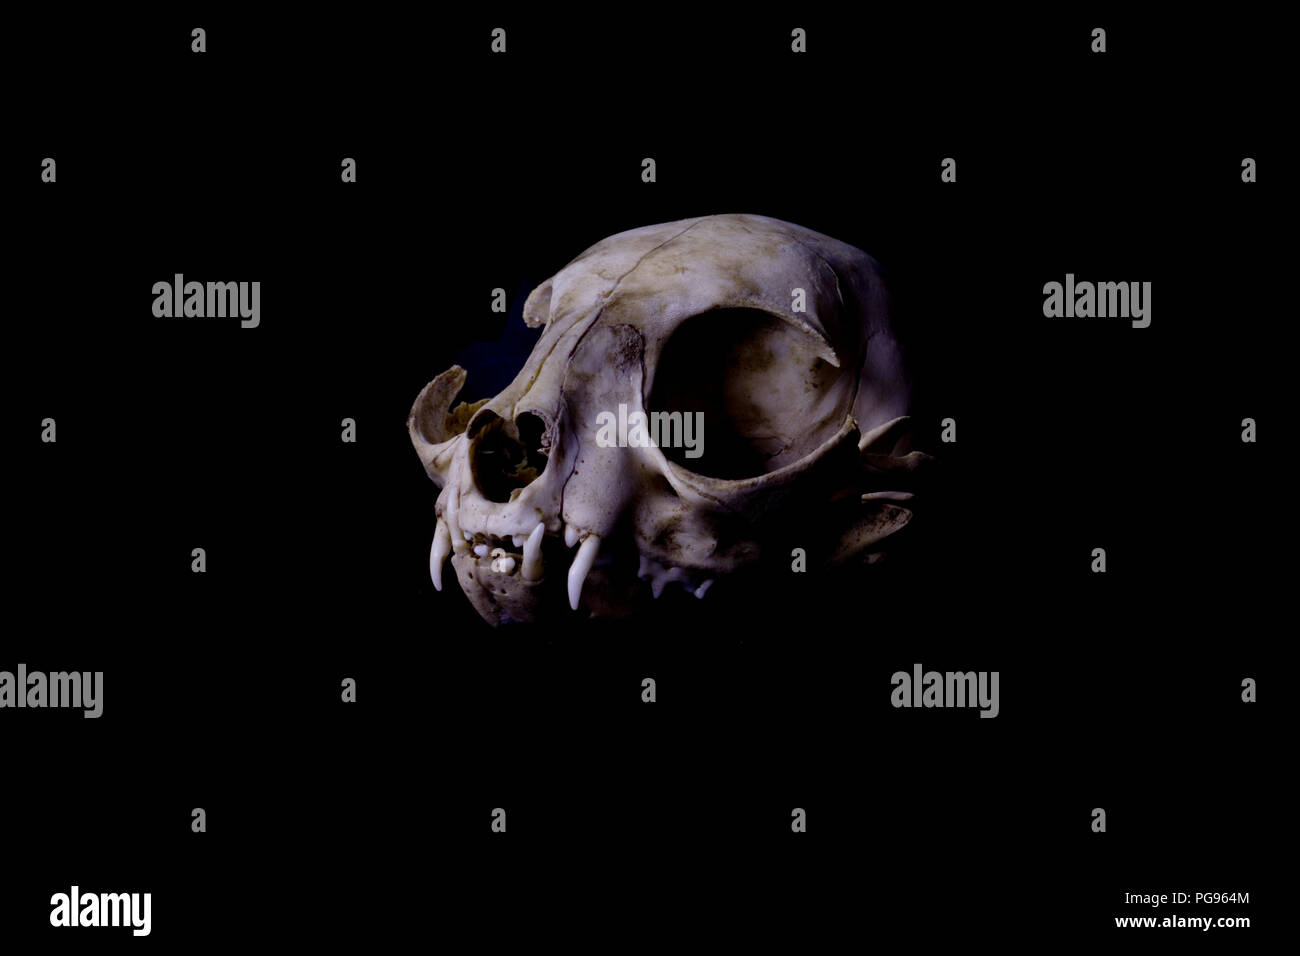 Cat Skull With Black Background Scientific Forensic And Artistic